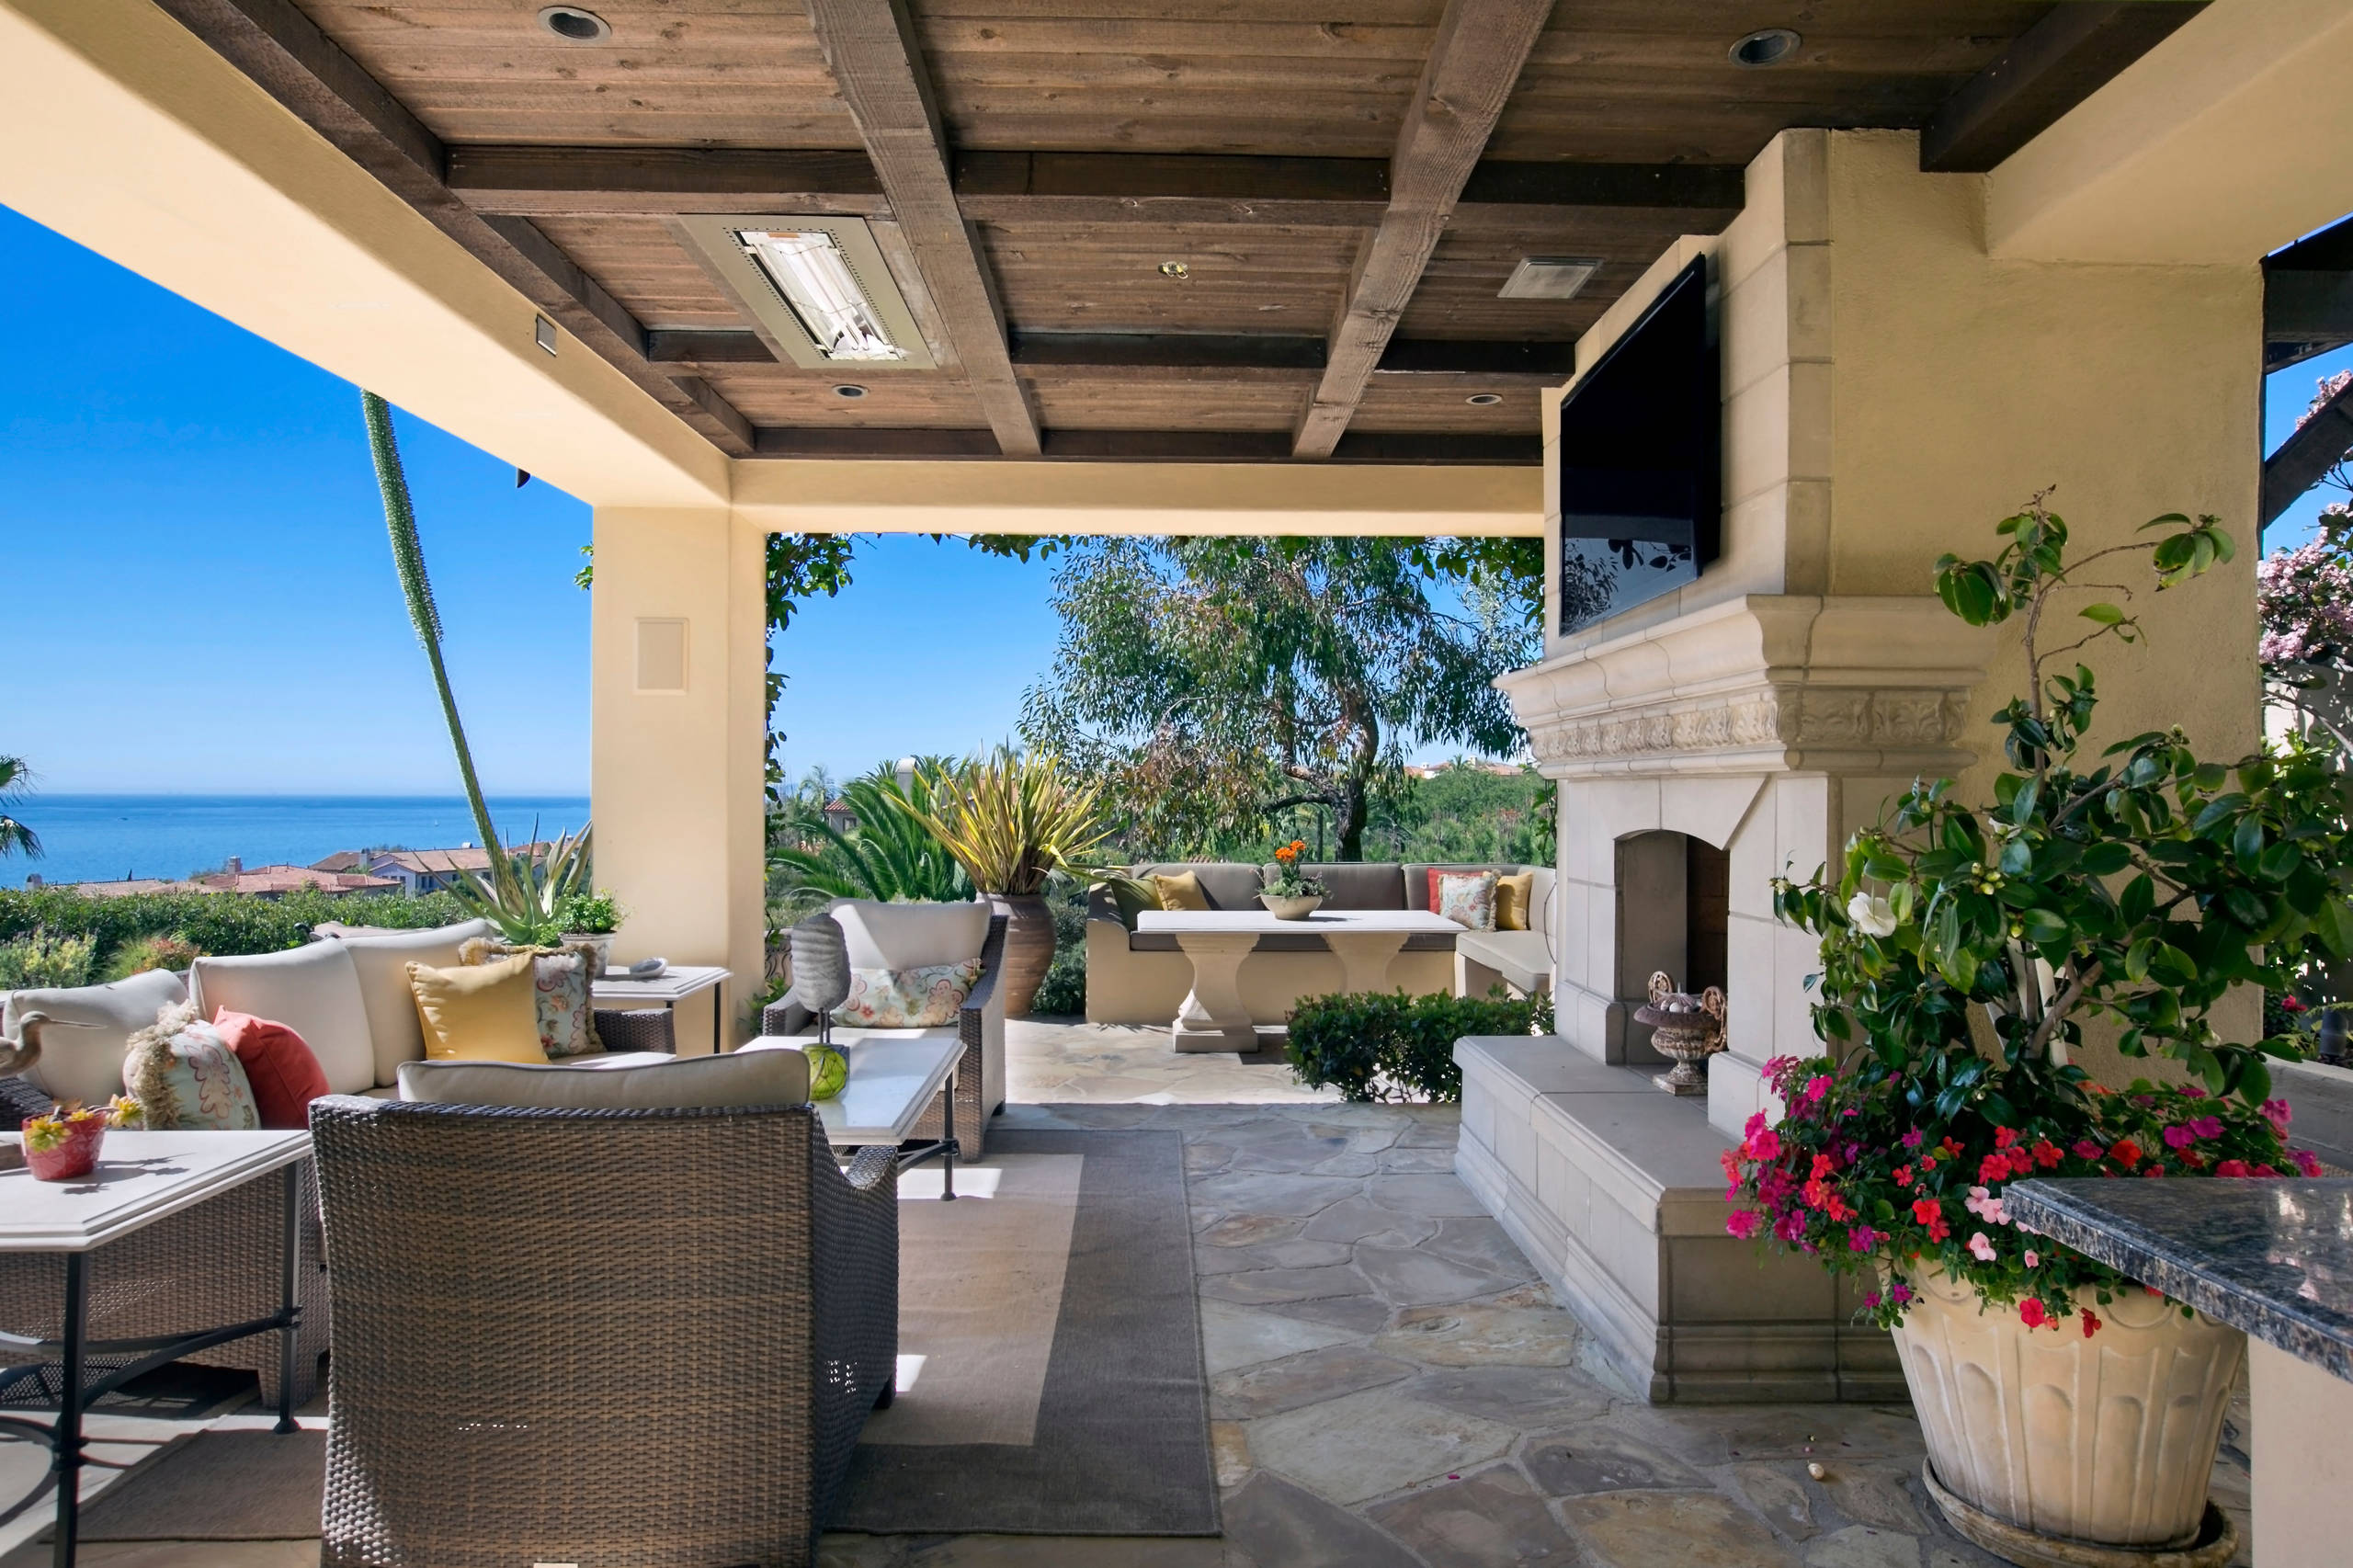 16 Beautiful Mediterranean Patio Designs That Will ... on Best Backyard Patio Designs id=53441